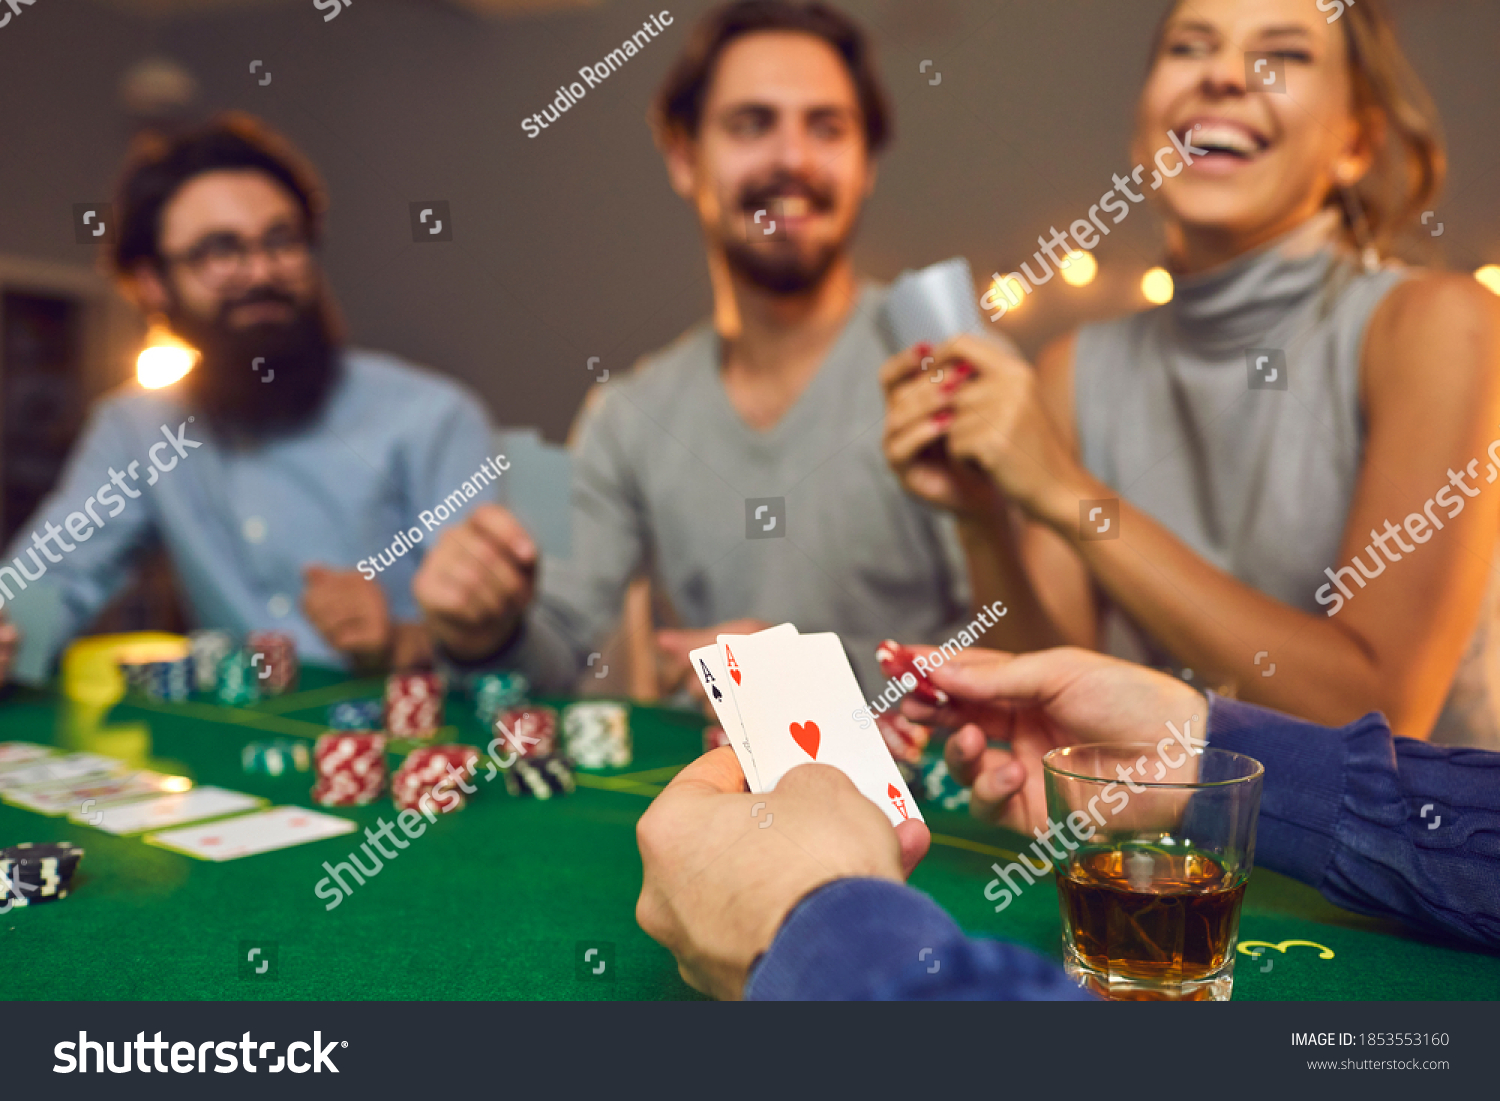 Mans hands holding playing cards with aces, poker chips and drink in glass during poker gambling over smiling friends faces at background, close-up, selective focus. Gambling, casino, poker concept #1853553160